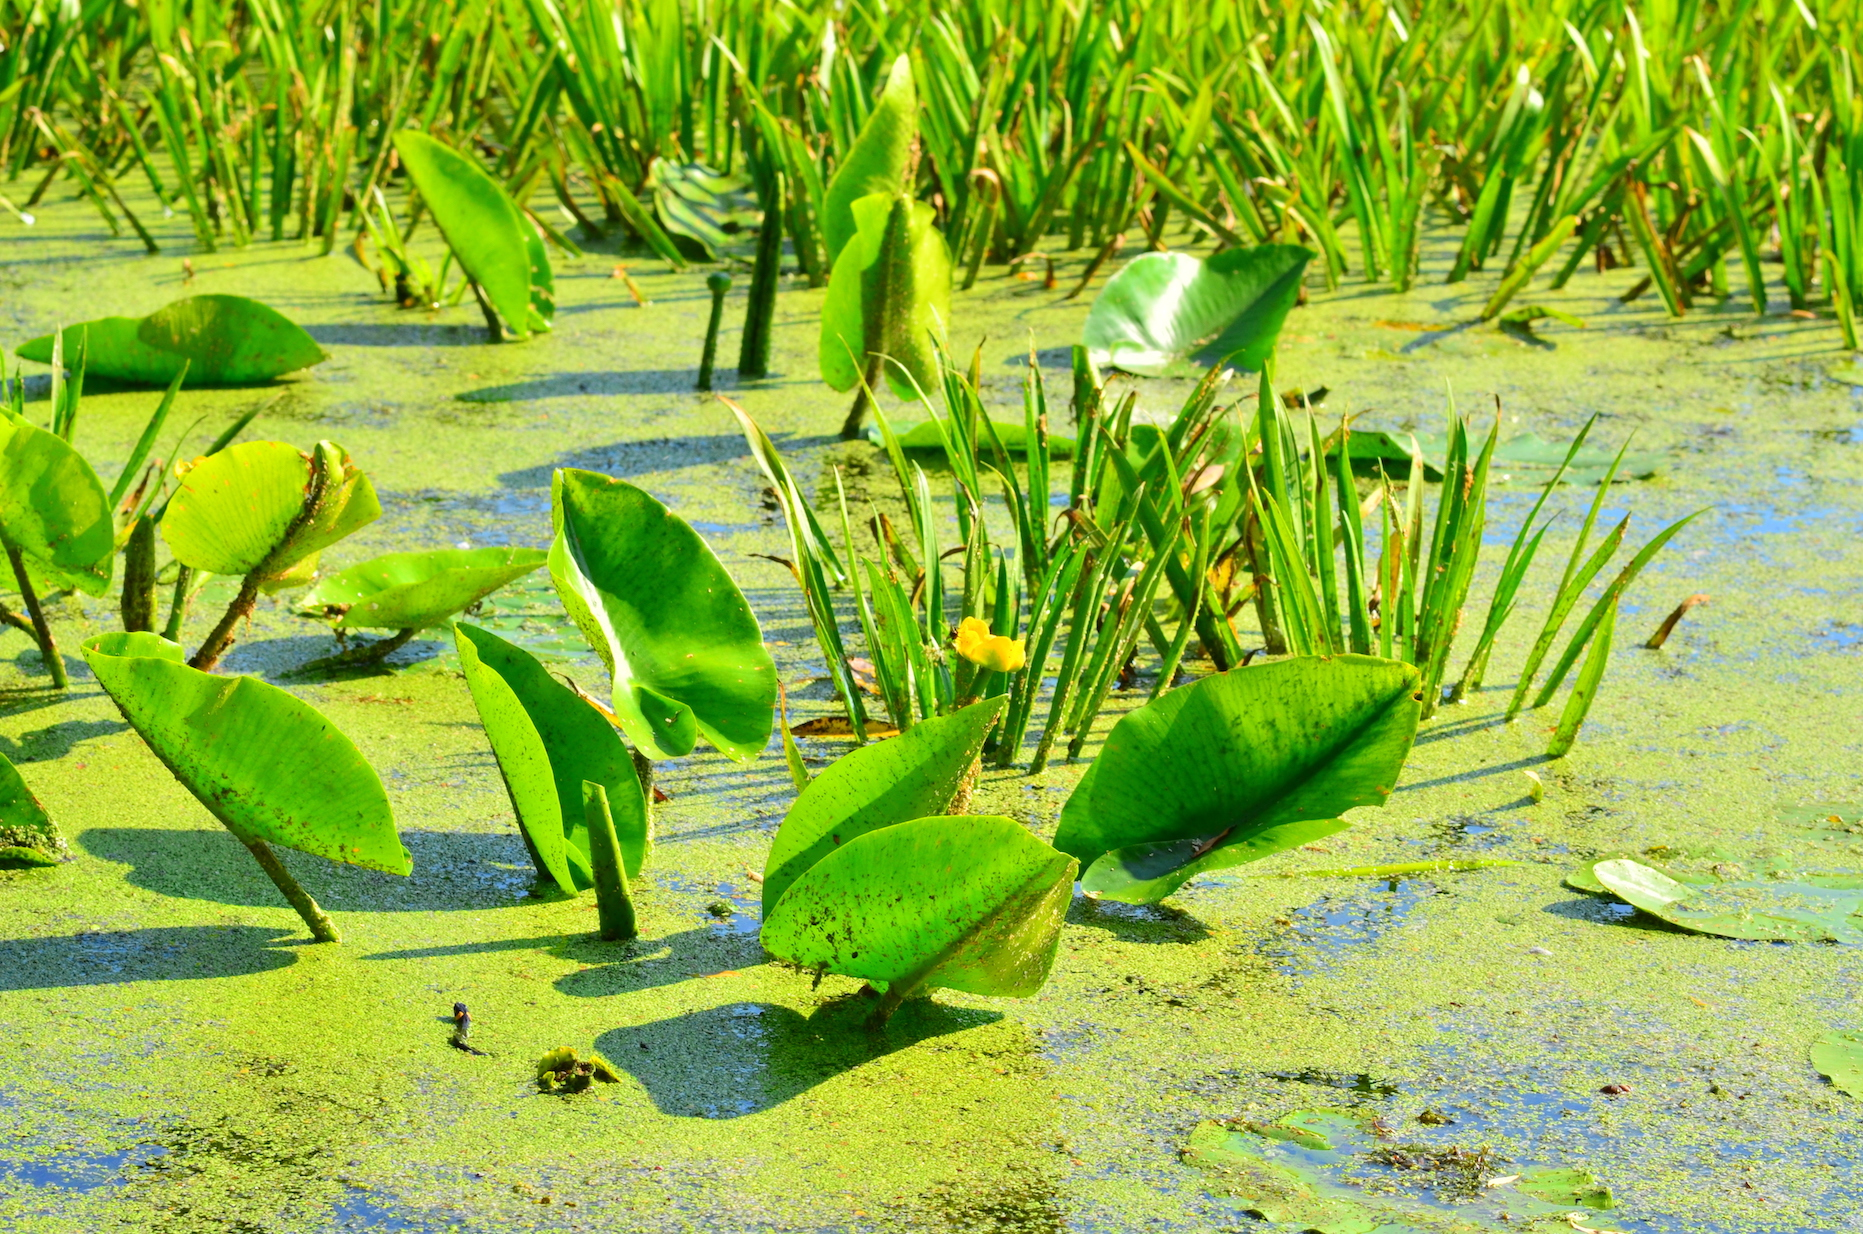 Tropical peatlands, which help remove carbon dioxide from the atmosphere, are threatened by climate change that alters rainfall patterns.